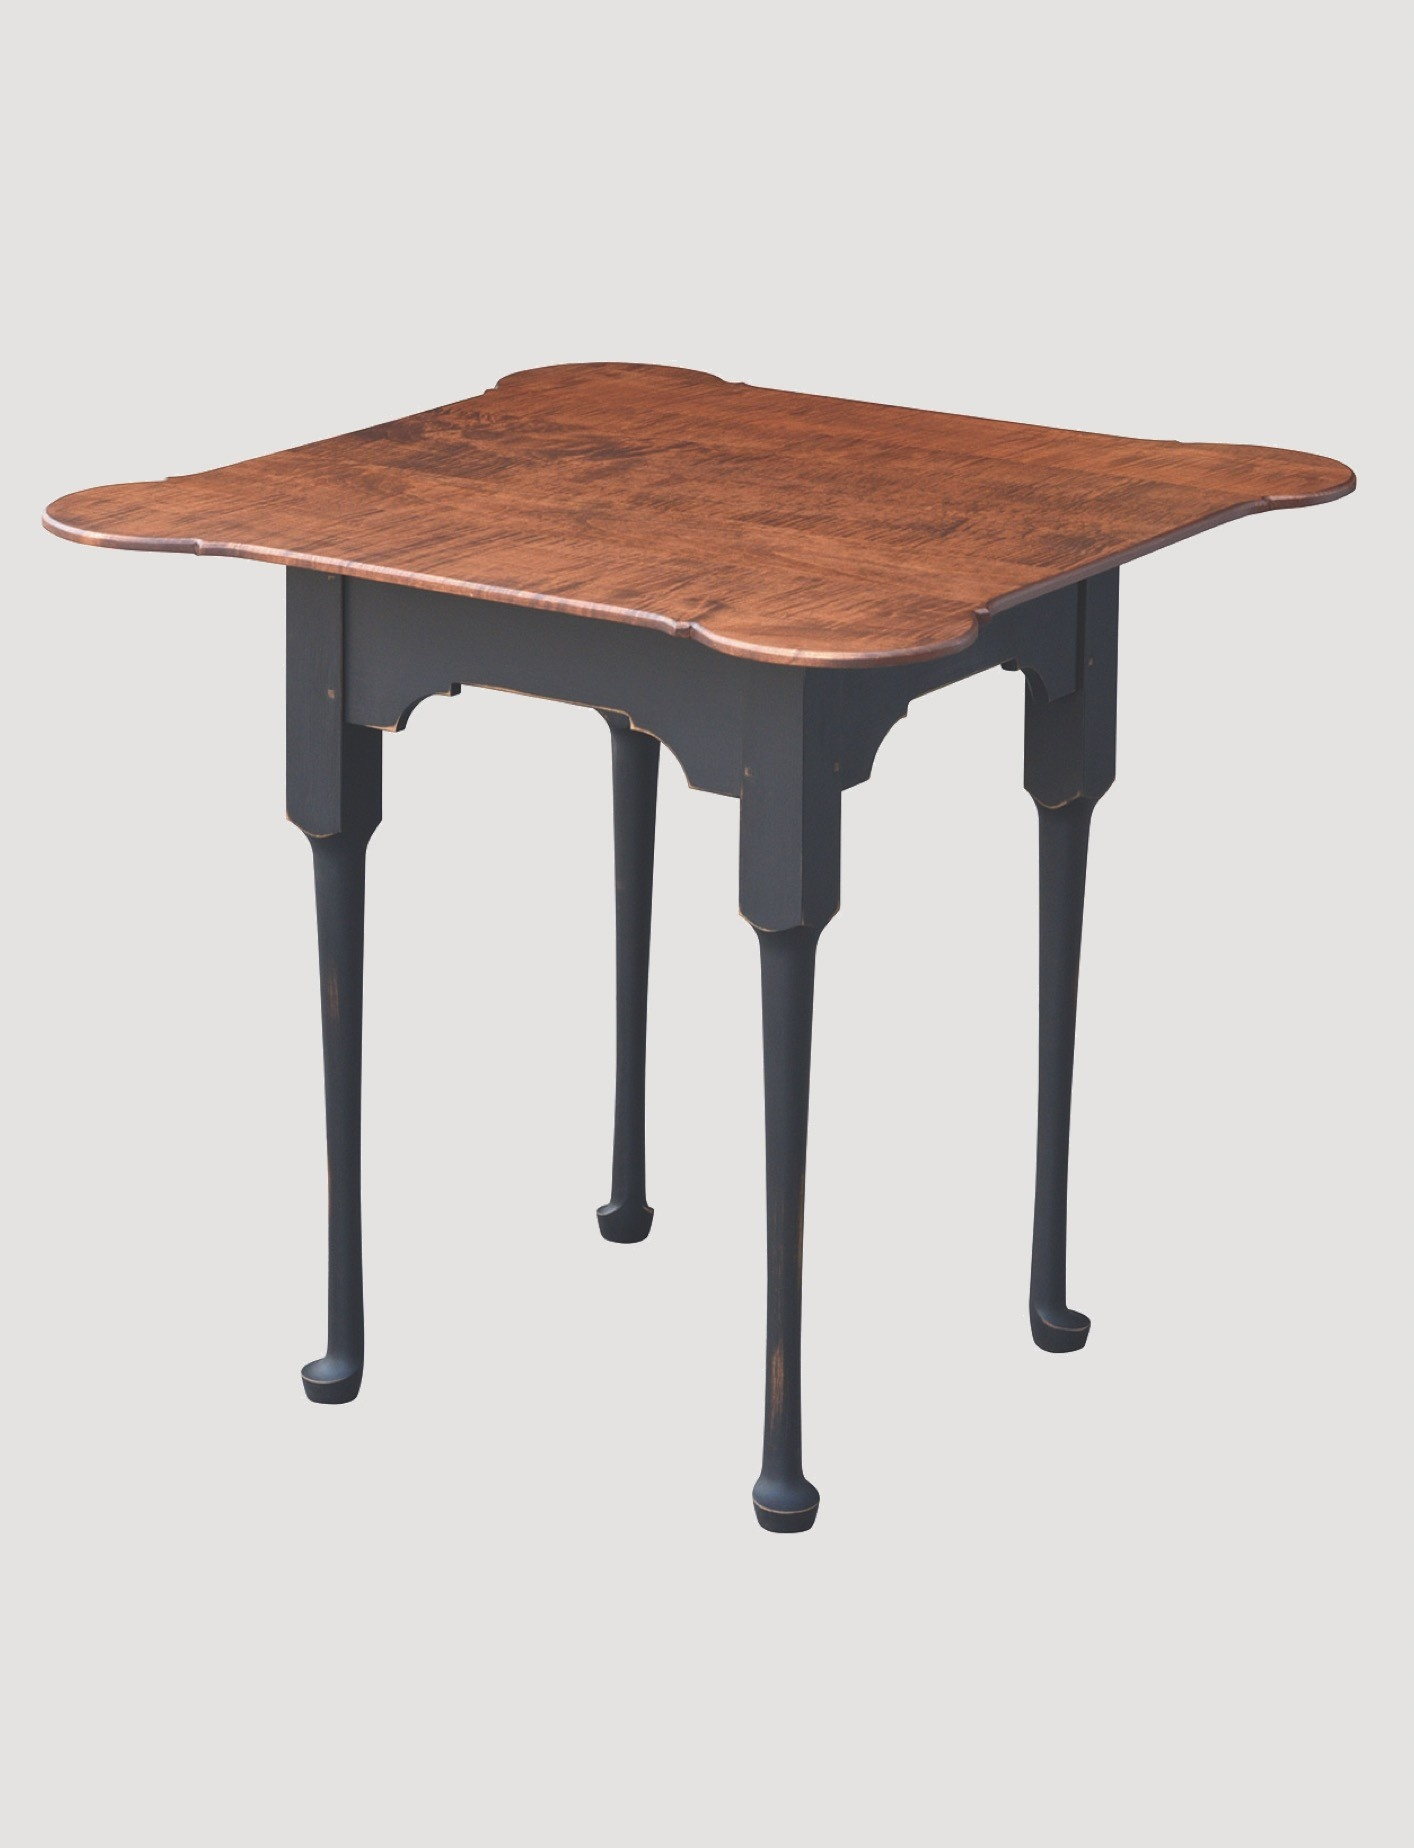 Primitive Designs Porringer Game Table with Tiger Maple Top & Black Rubbed Legs